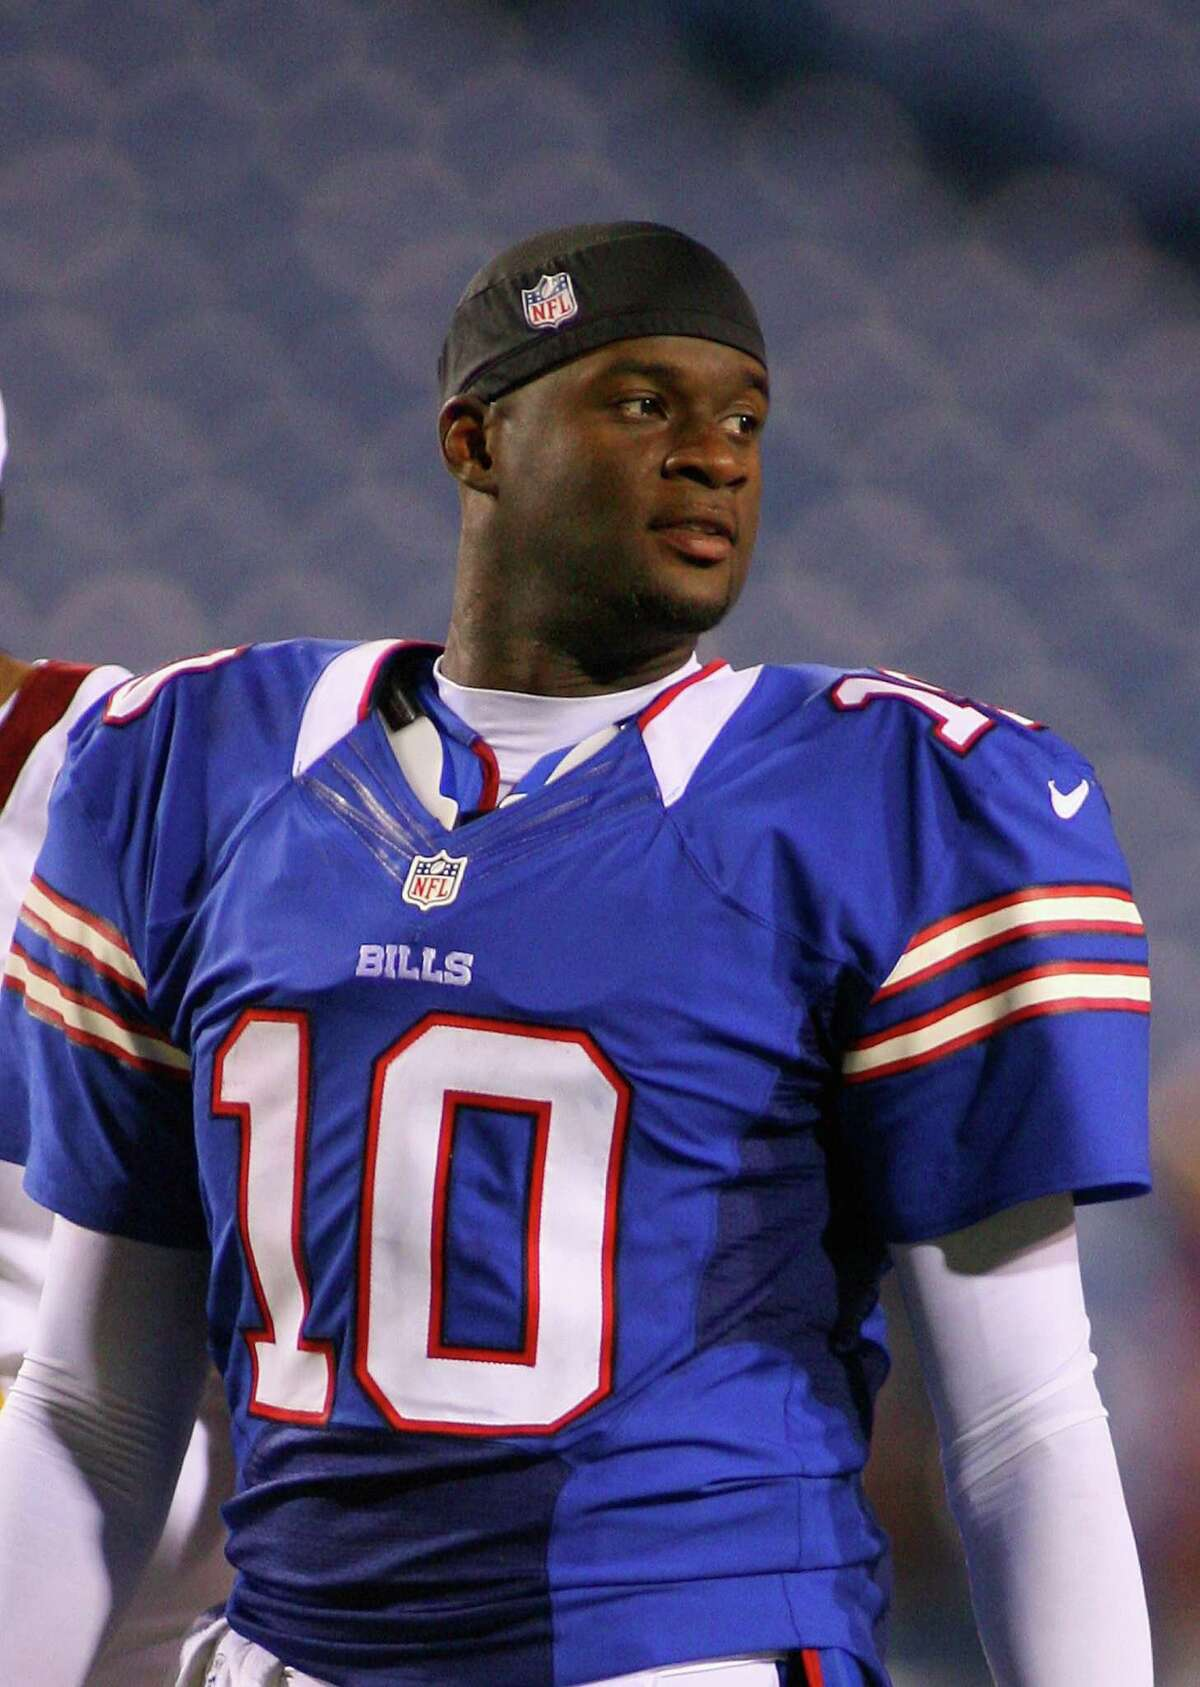 According to Bloomberg, some NFL players are getting internships in Wall Street to boost their resume for life away from football. Vince Young Source: Fox Sports